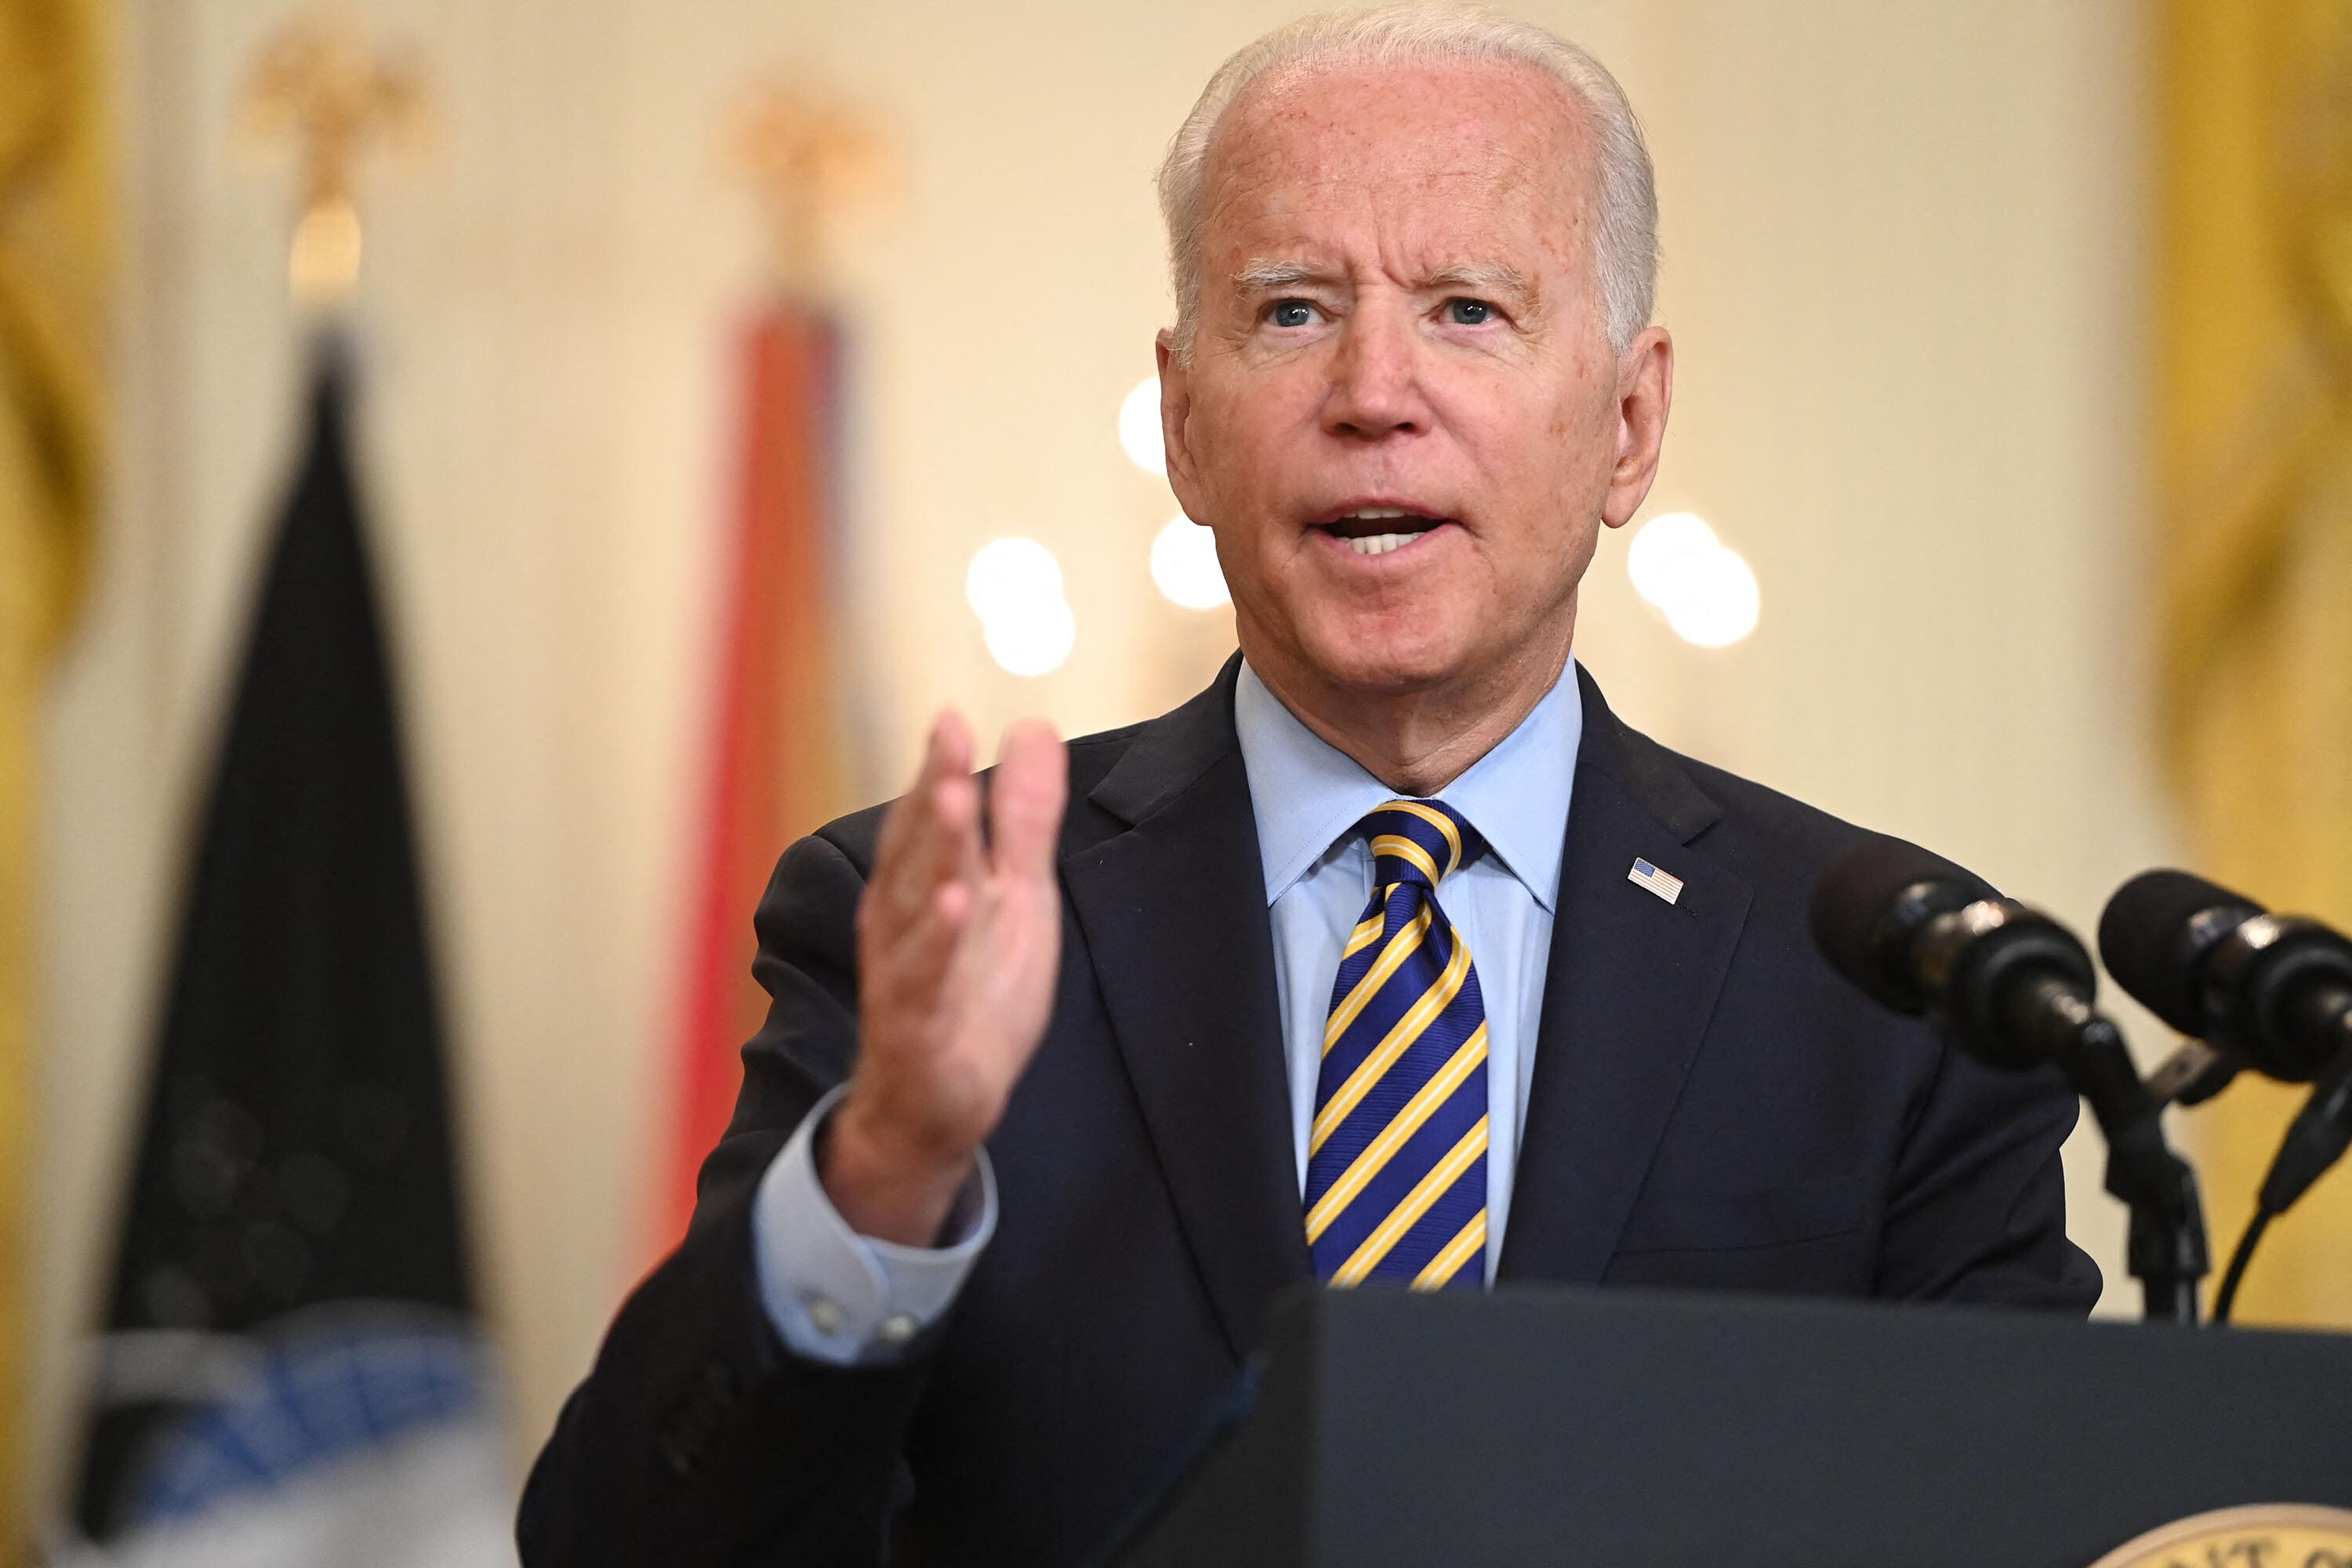 Biden signs sweeping executive order that targets Big Tech and aims to push competition in US economy